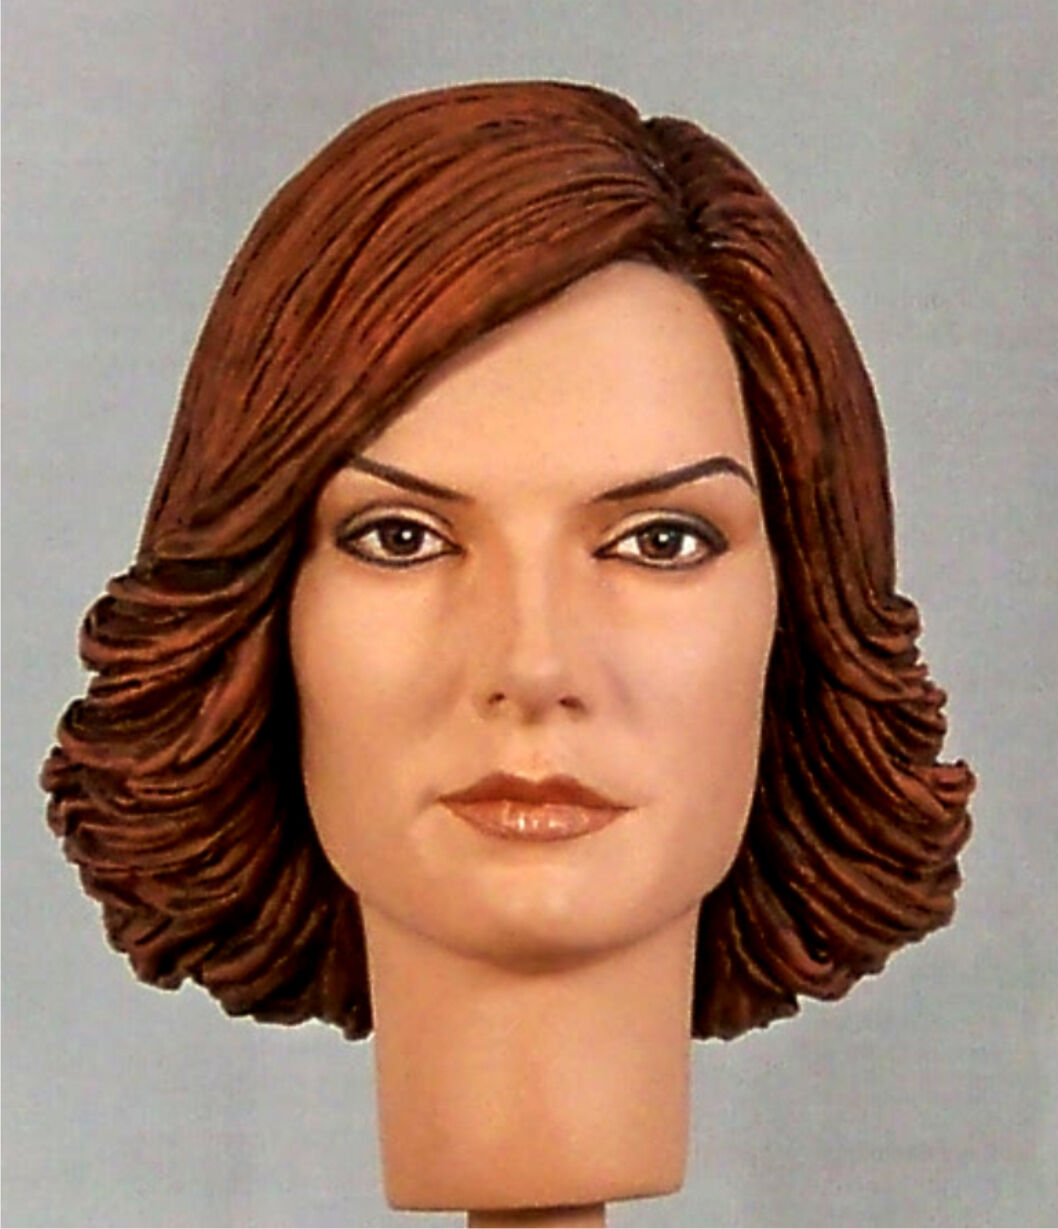 1:6 Custom Head of Famke Janssen as Jean Grau from the film X-Men 2